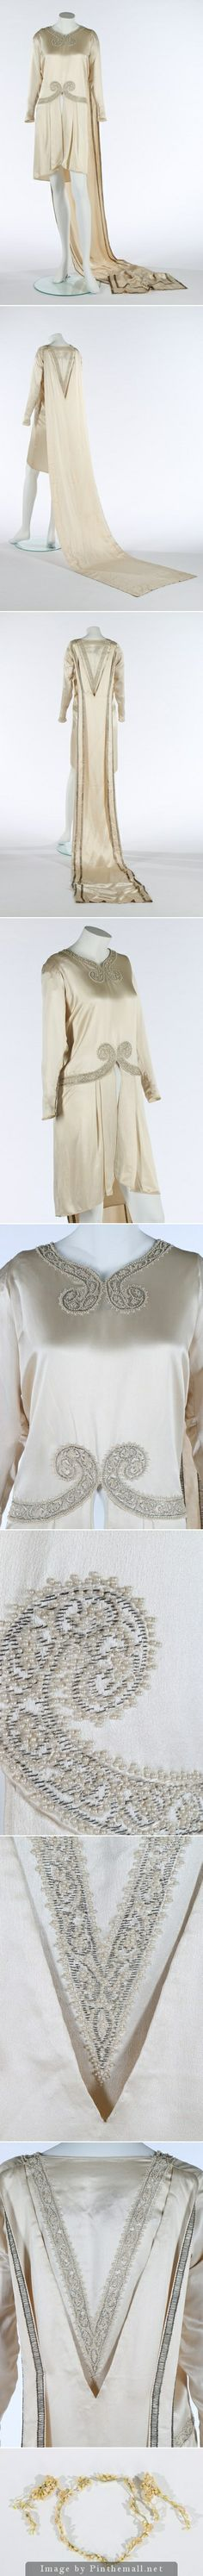 A Callot Soeurs couture ivory satin bridal gown with integral train, 1927. un-labelled, with embroidered curleques to the neck and waist, V to back which is framed by the train which has metal strip embroidered bands to the reverse, front split to skirt which would have revealed the petticoat. KTA